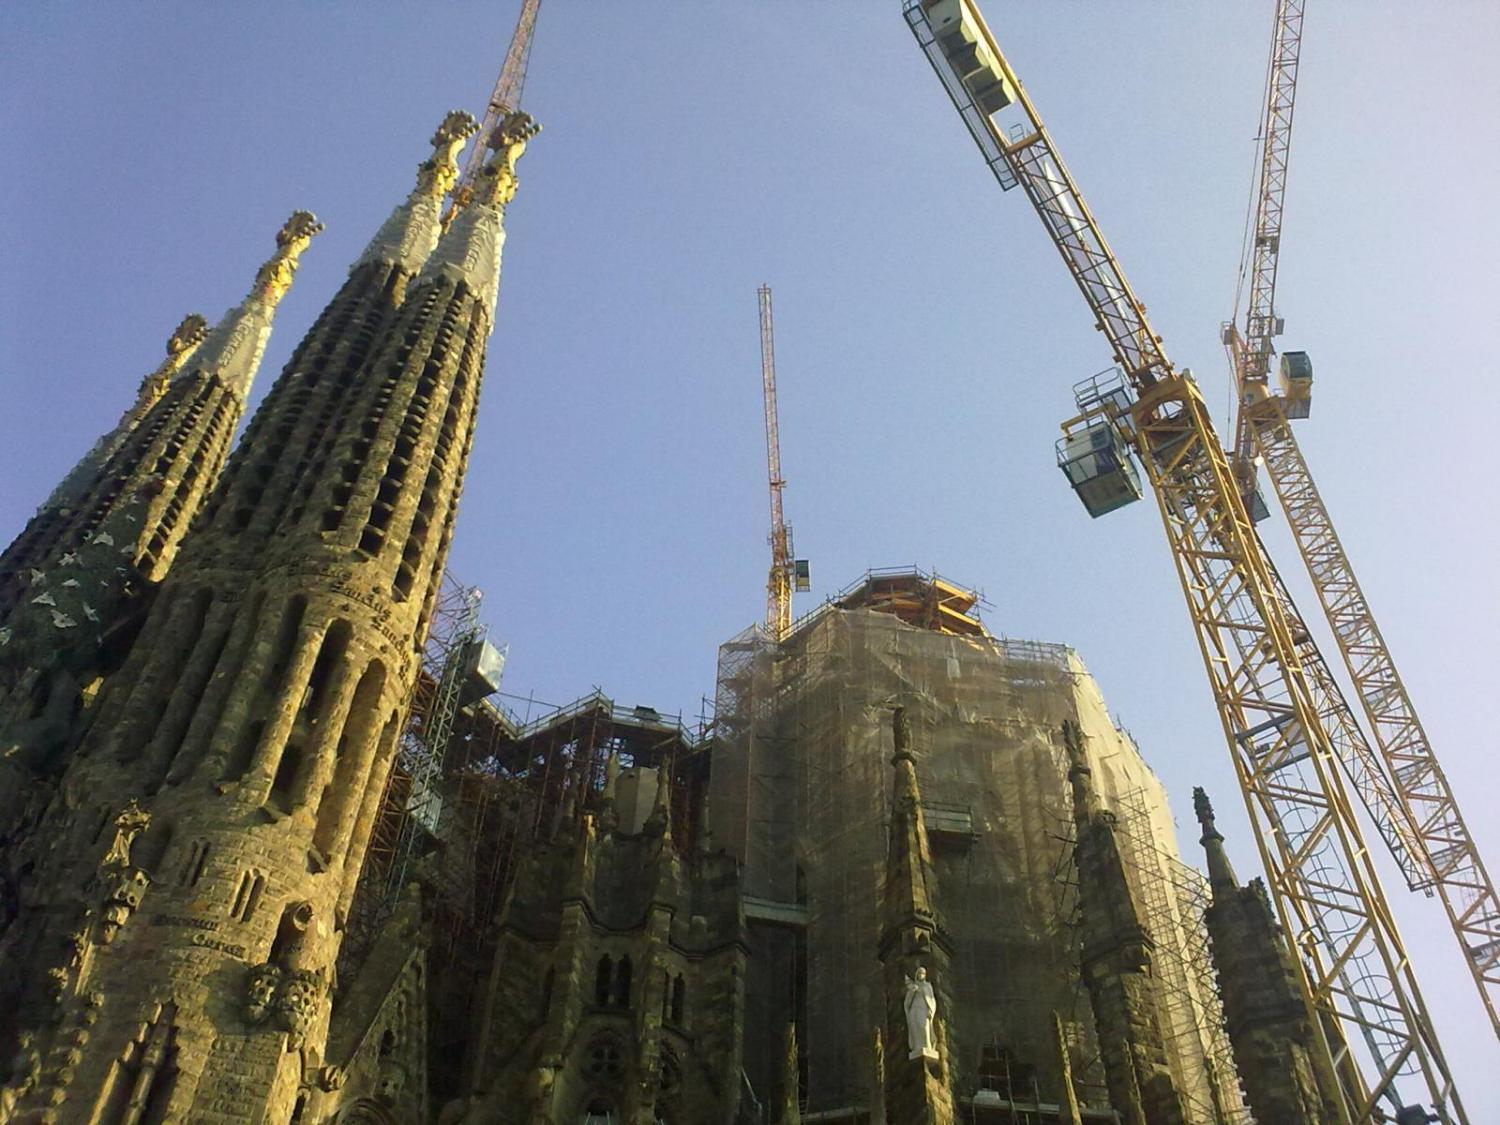 Building the Sagrada Familia